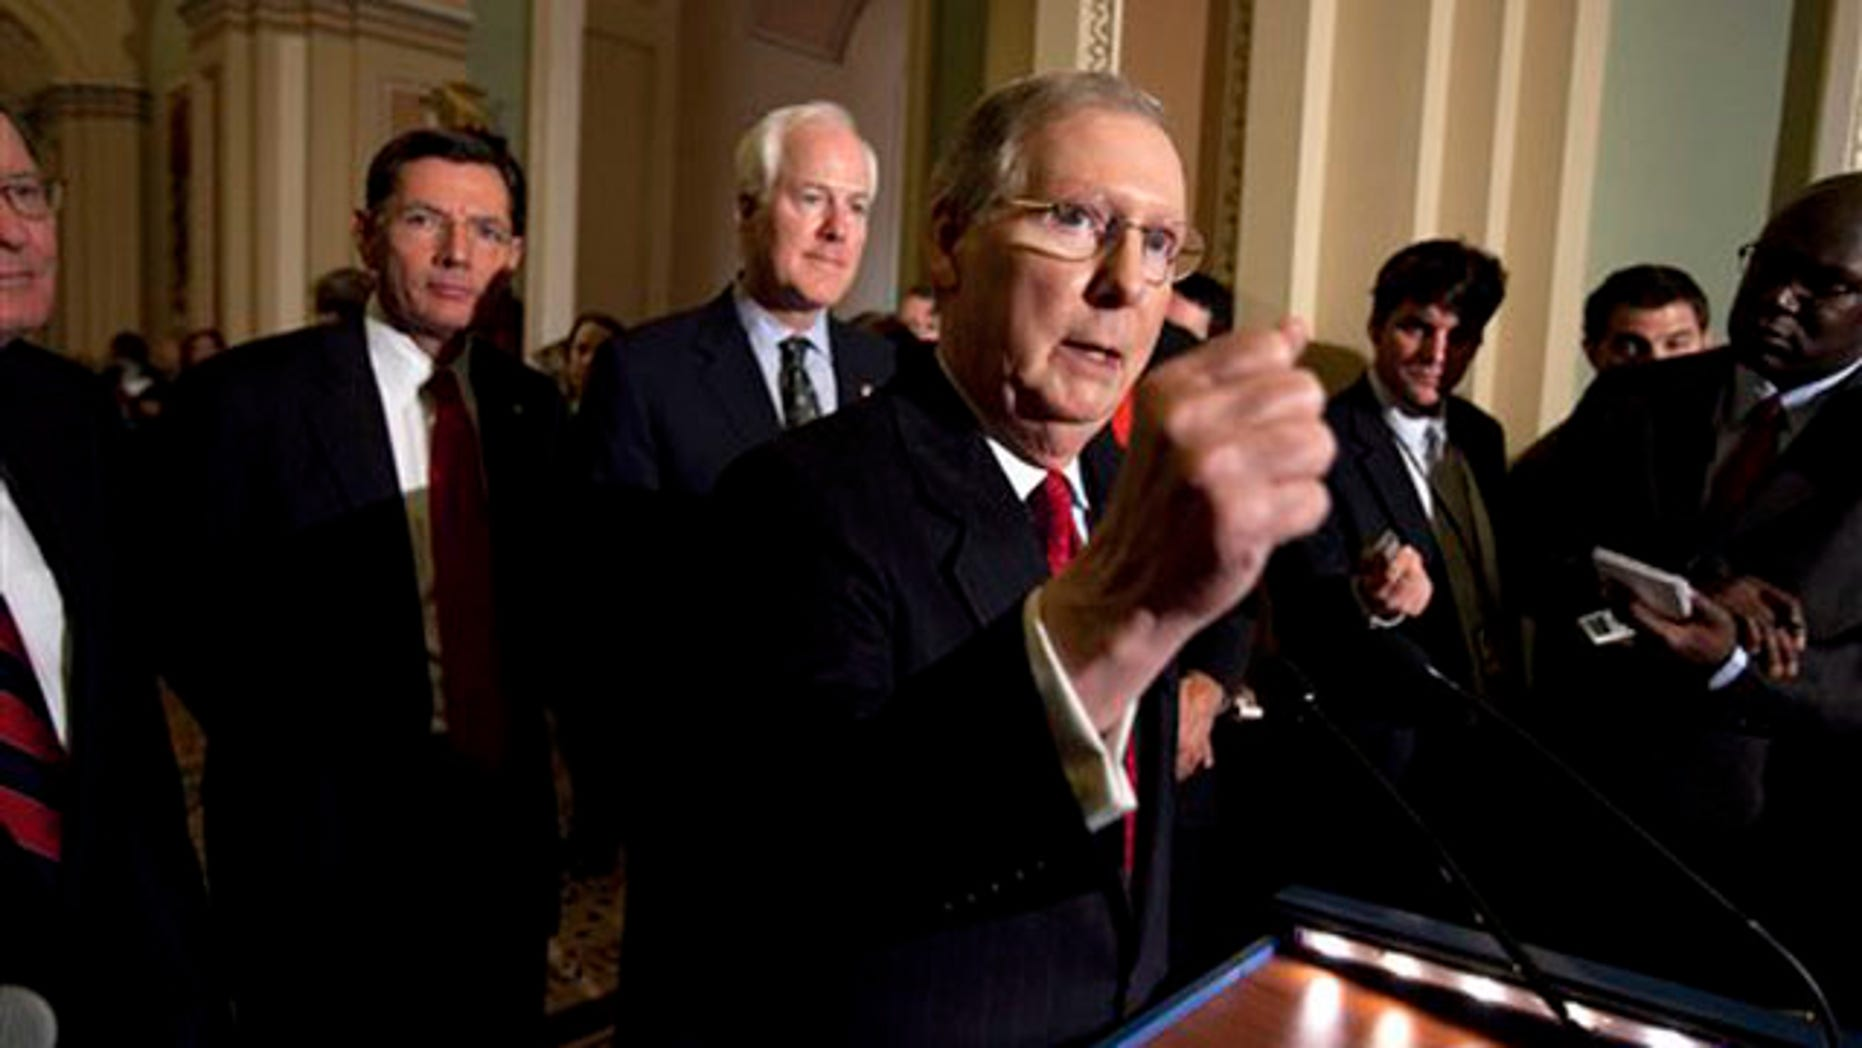 Senate Minority Leader Mitch McConnell speaks to reporters after the weekly caucus luncheons in Washington on Jan. 25.